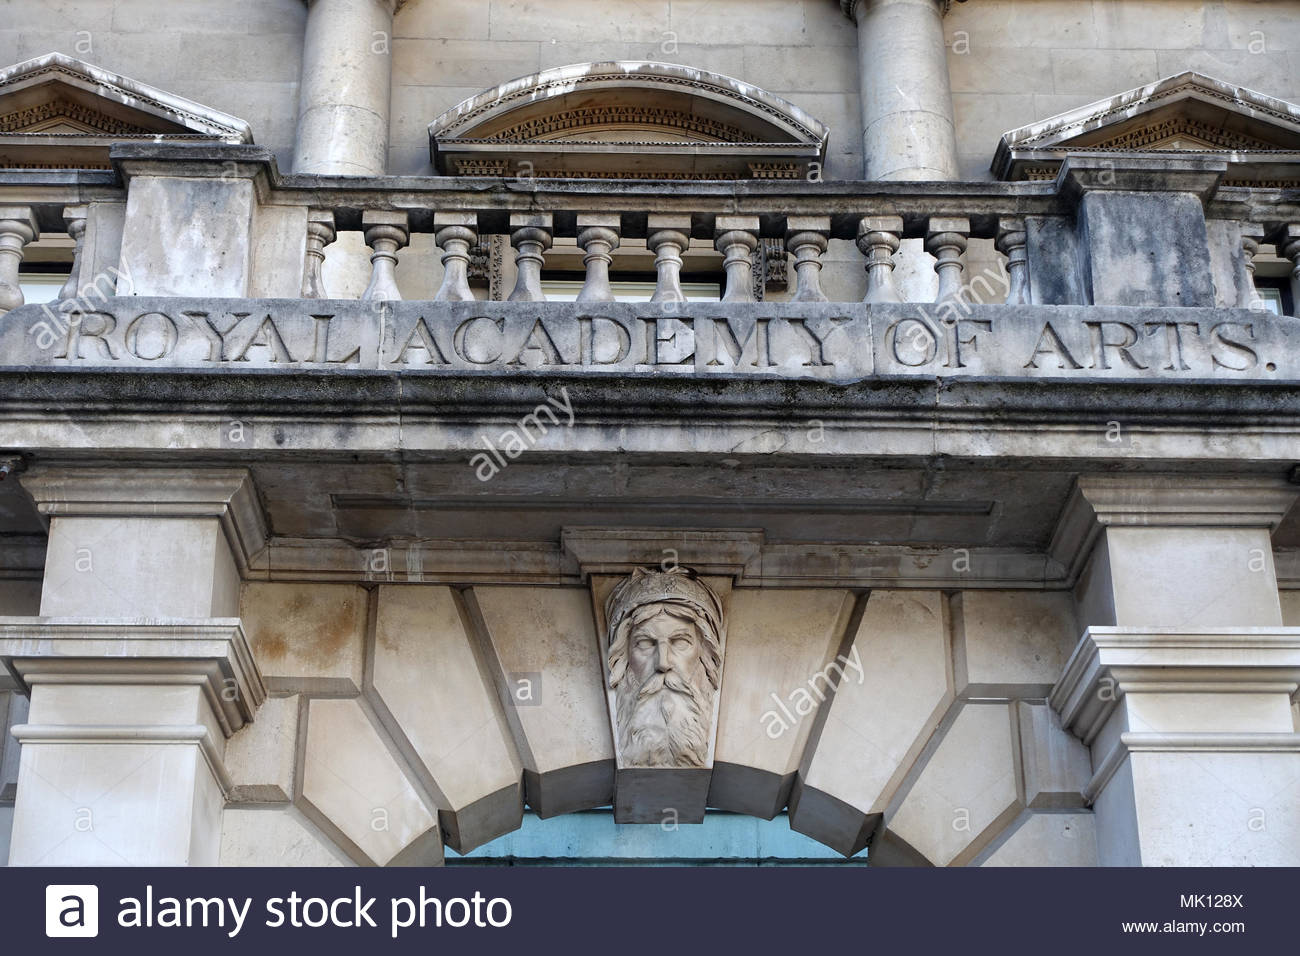 View of The Royal Academy of Arts inside Burlington House in Piccadilly London - Stock Image